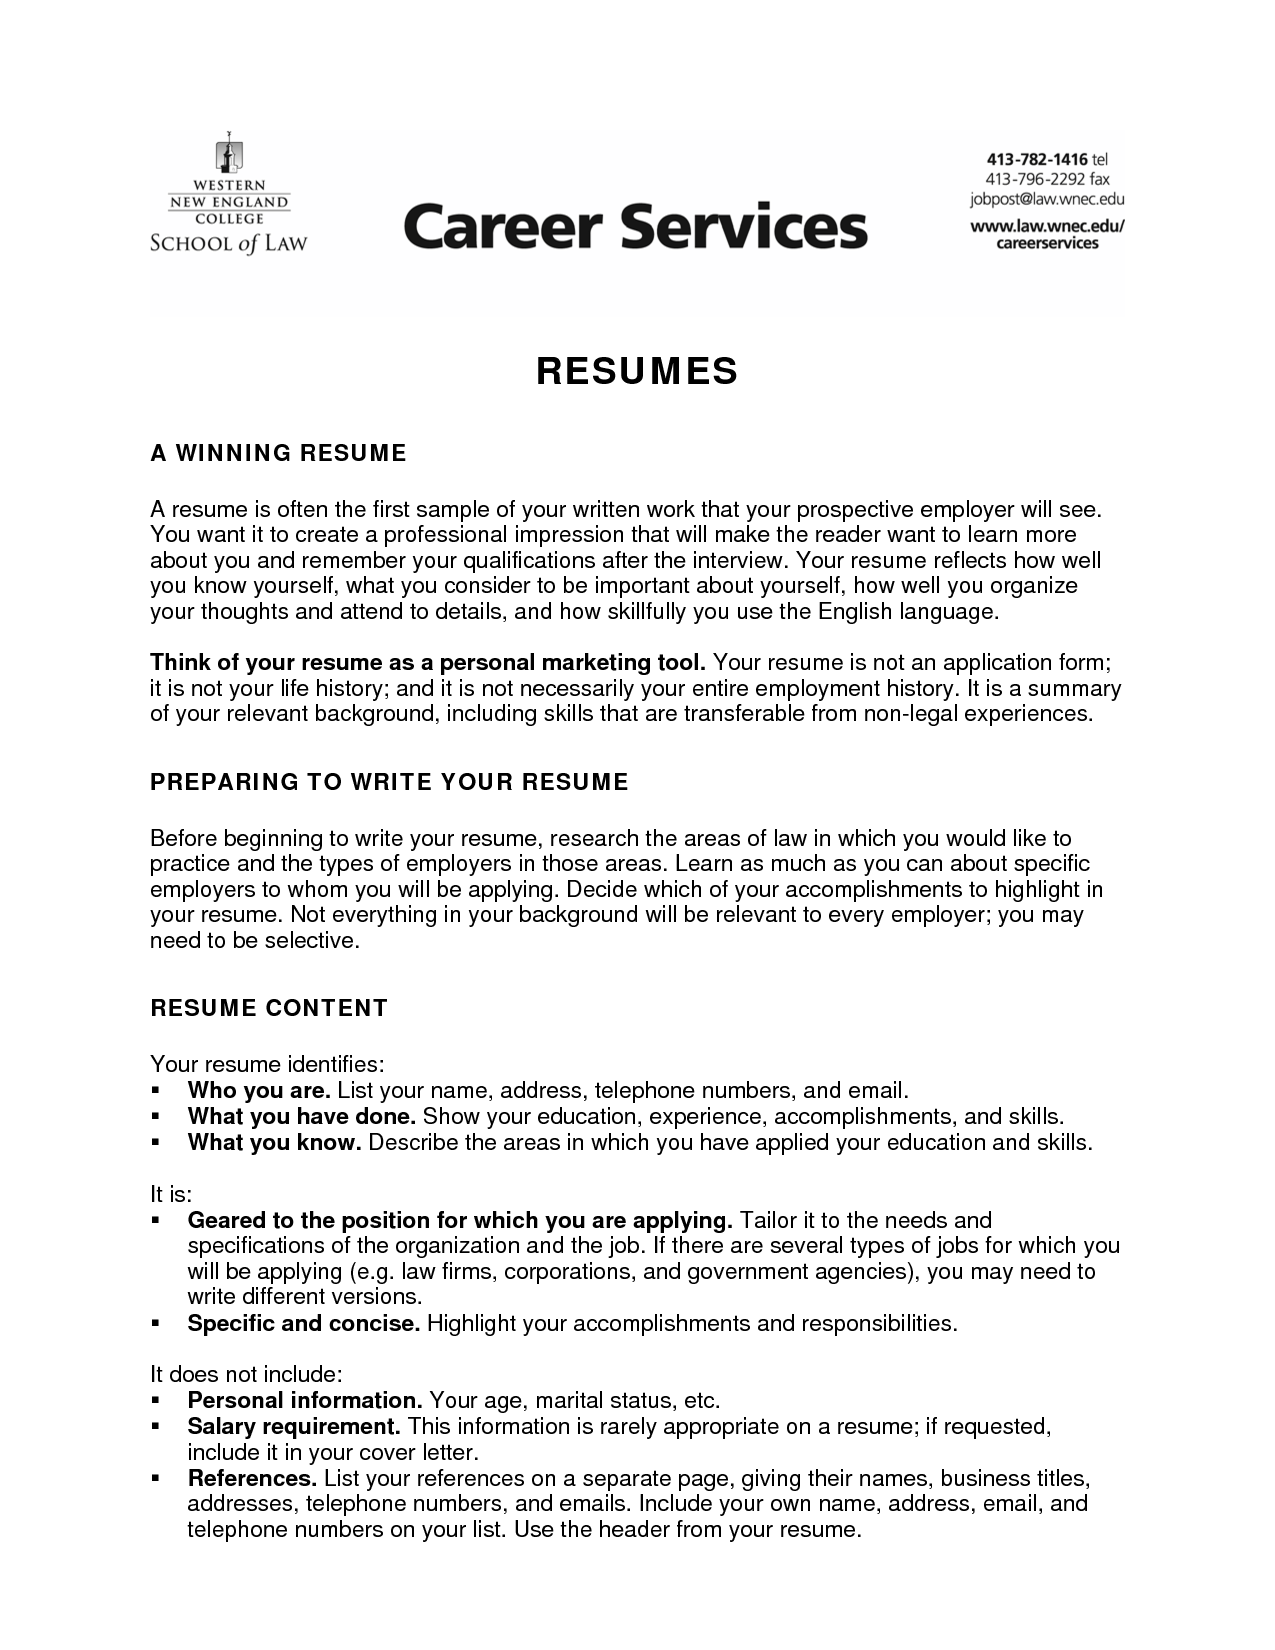 Resume Employment History Objective Resume Criminal Justice  Httpwwwresumecareer